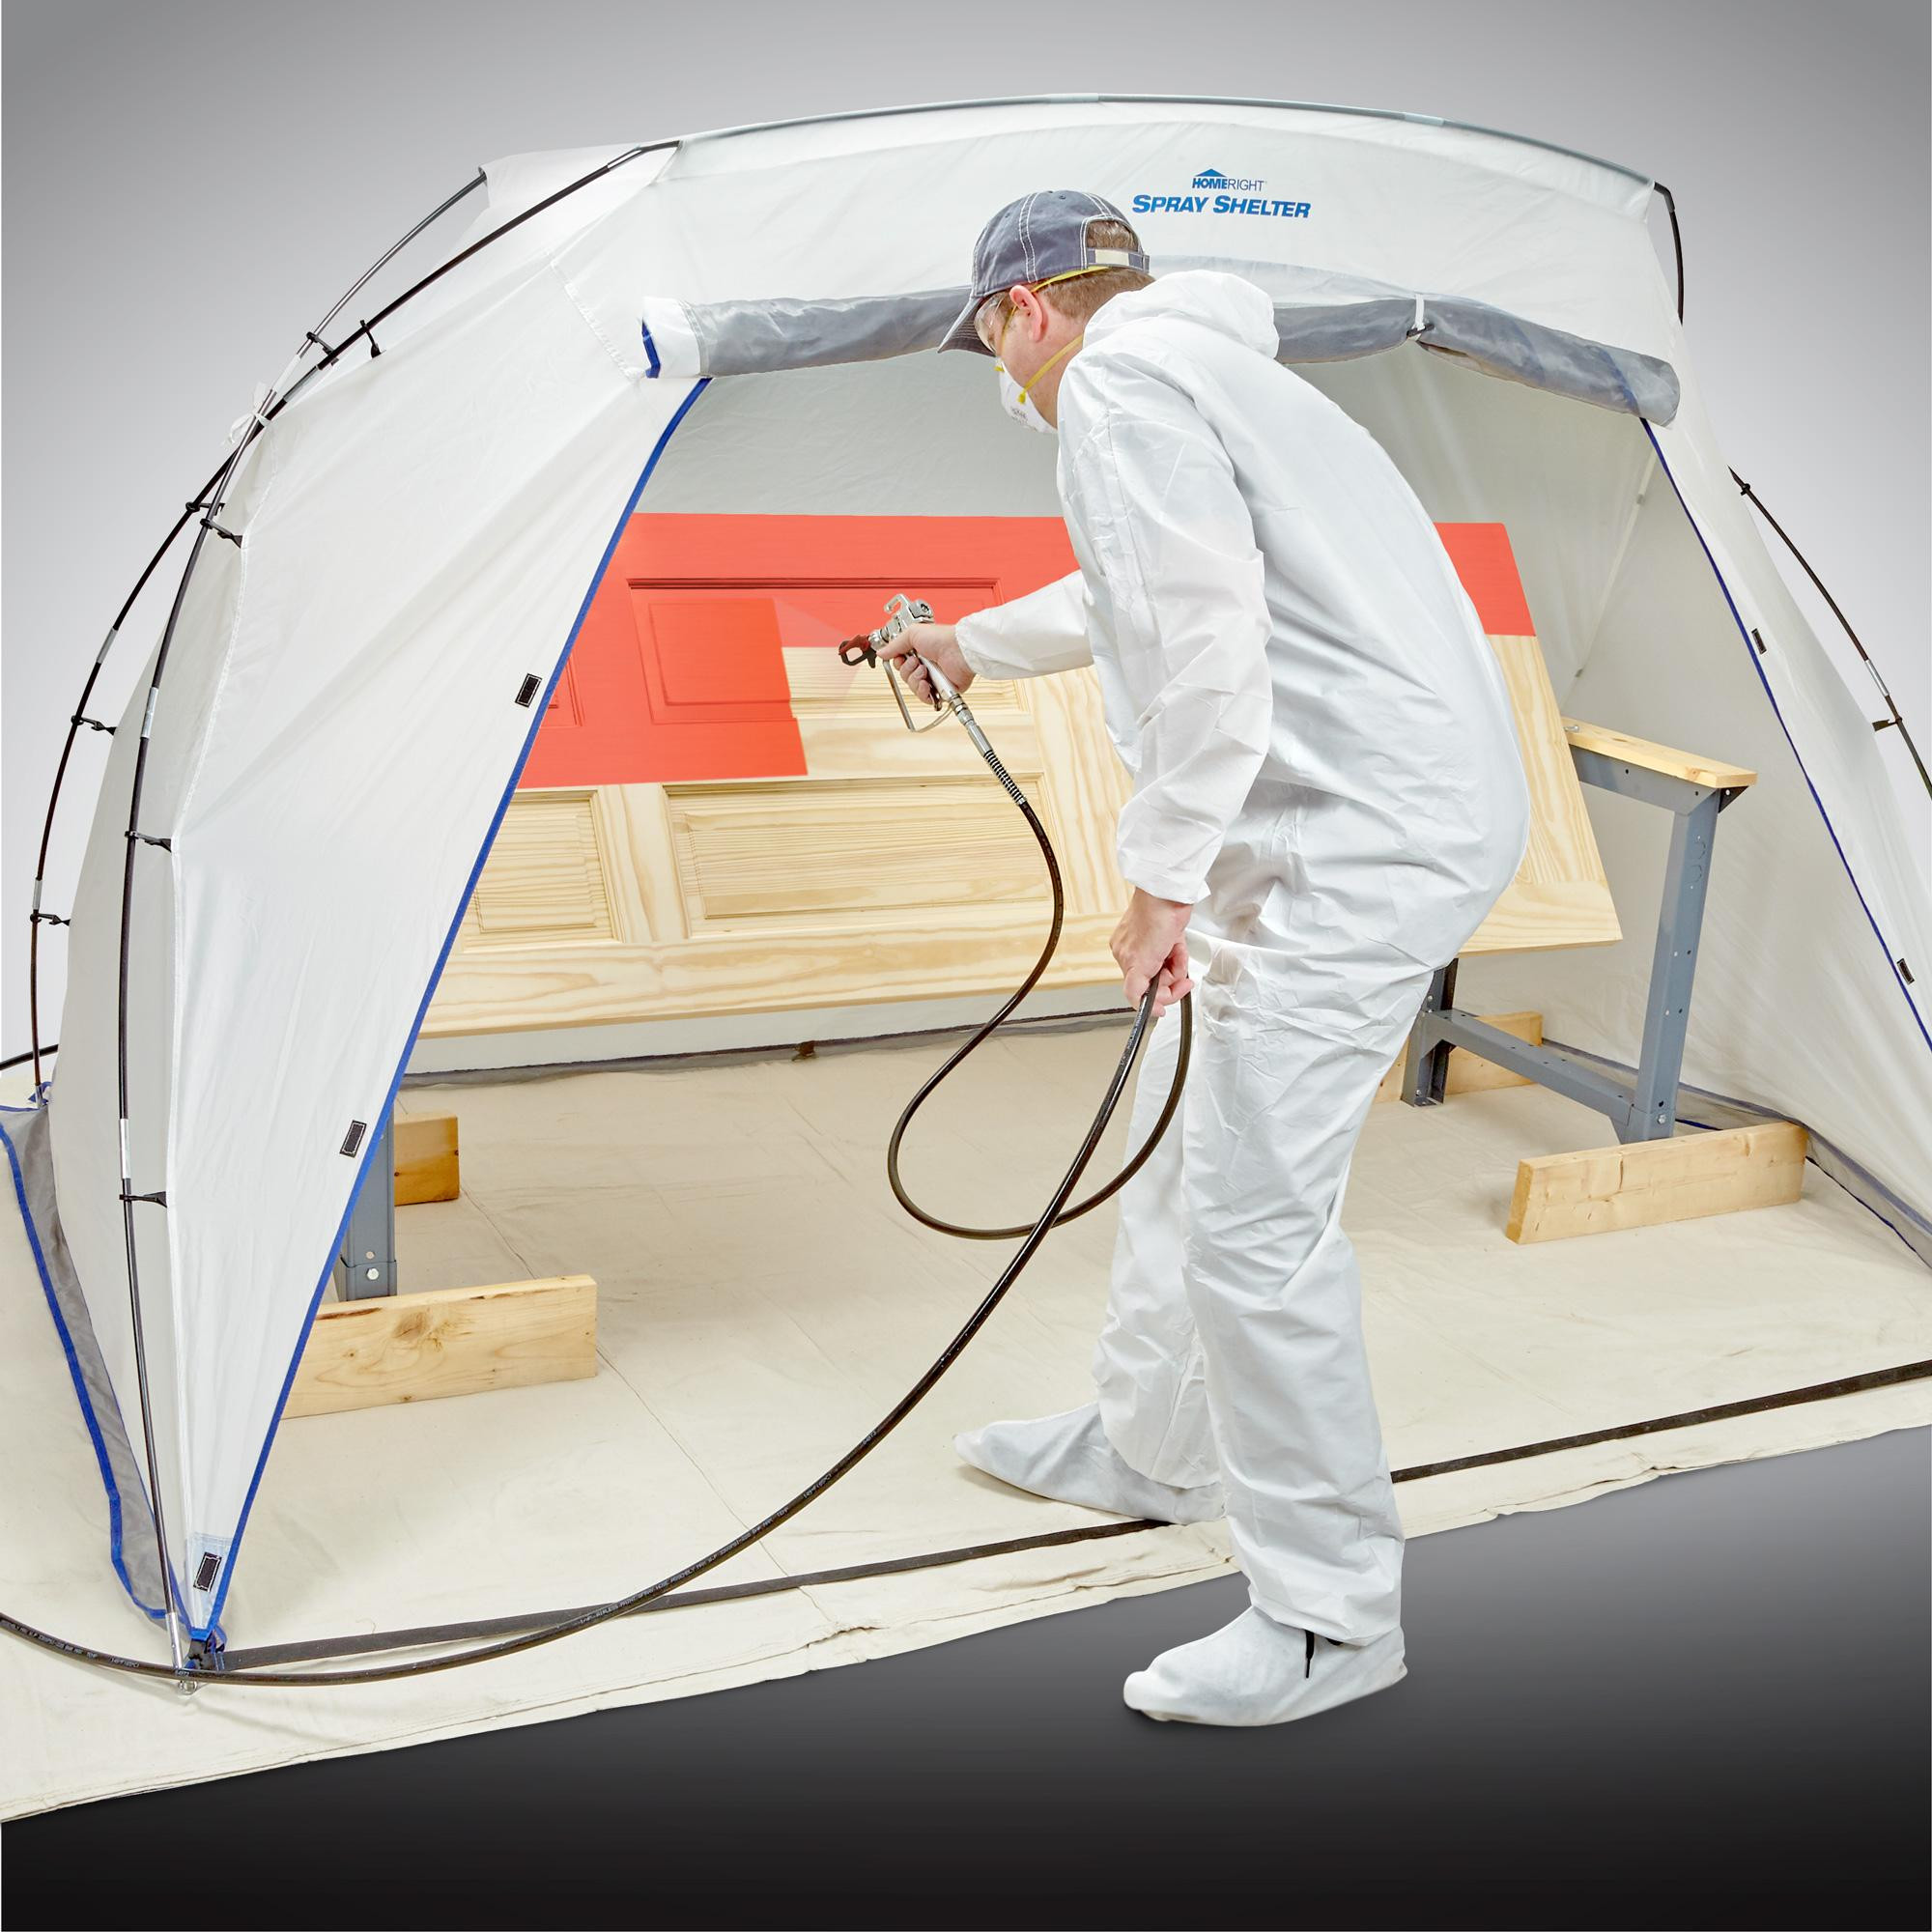 Best ideas about DIY Portable Paint Booth . Save or Pin Amazon HomeRight Spray Shelter C Portable Now.